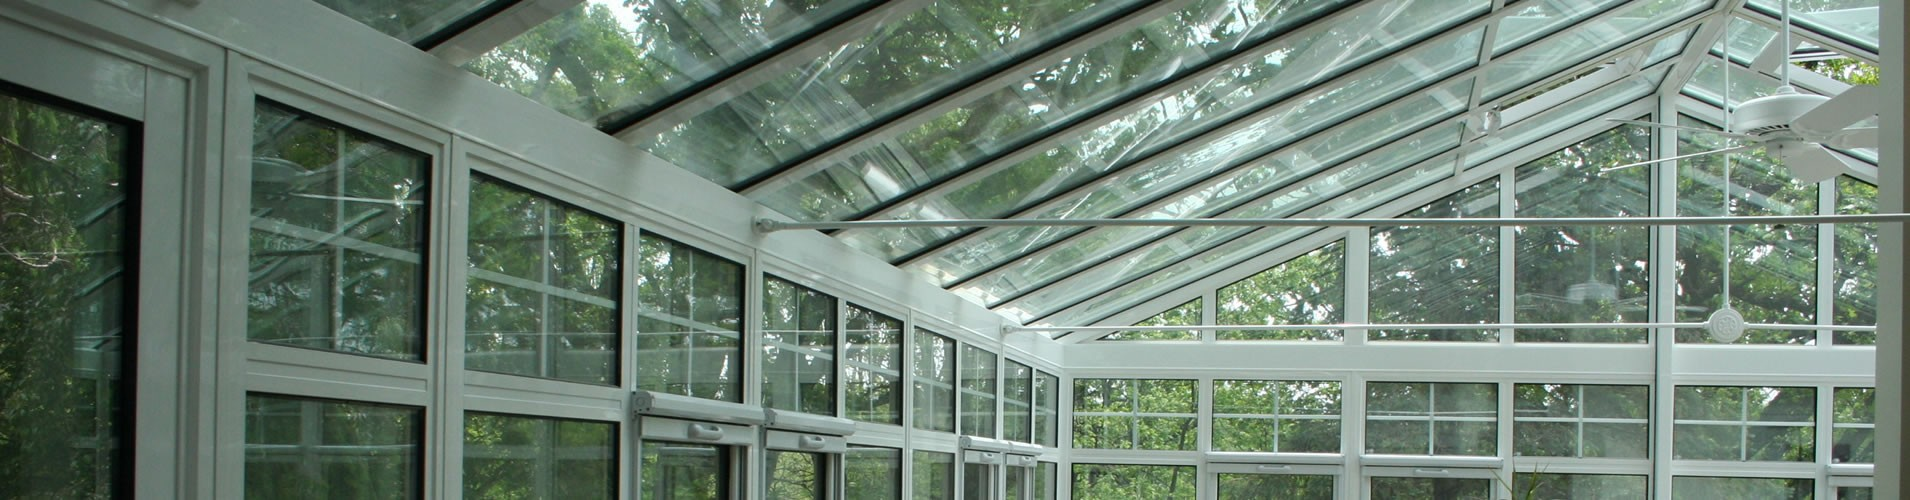 Conservatories & Solariums - Nashville, TN